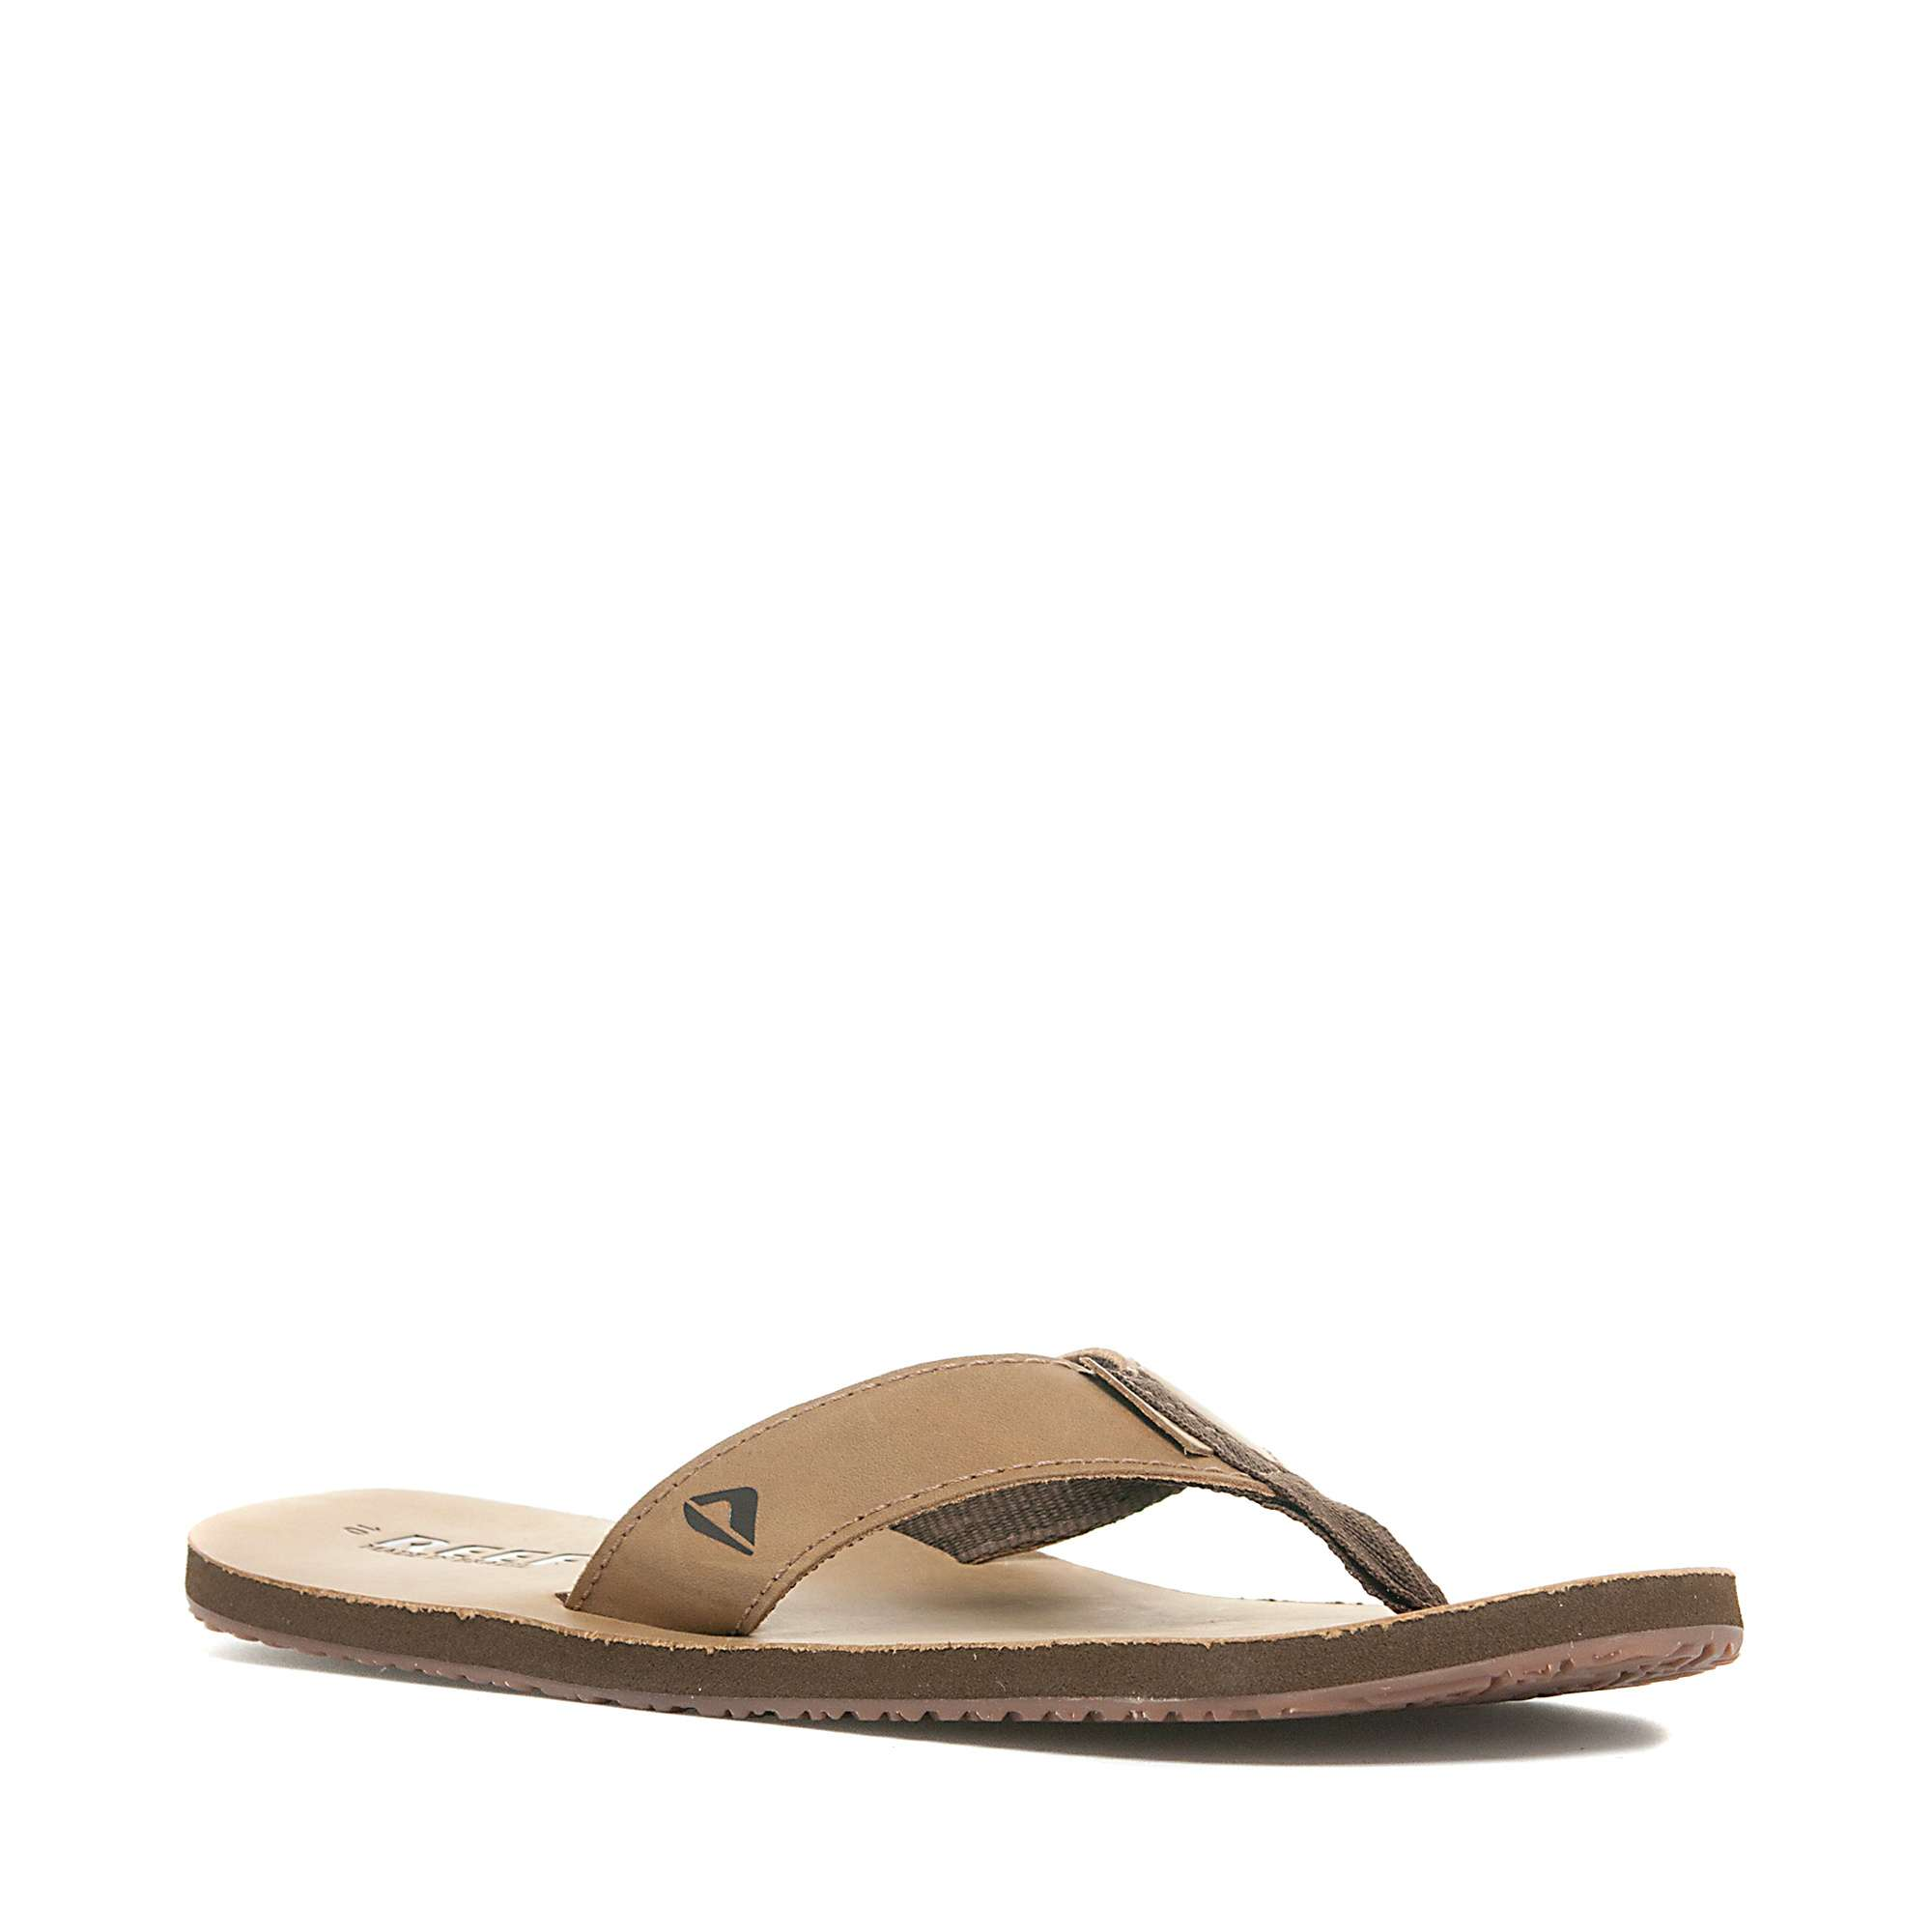 REEF Men's Leather Smoothy Flip Flop